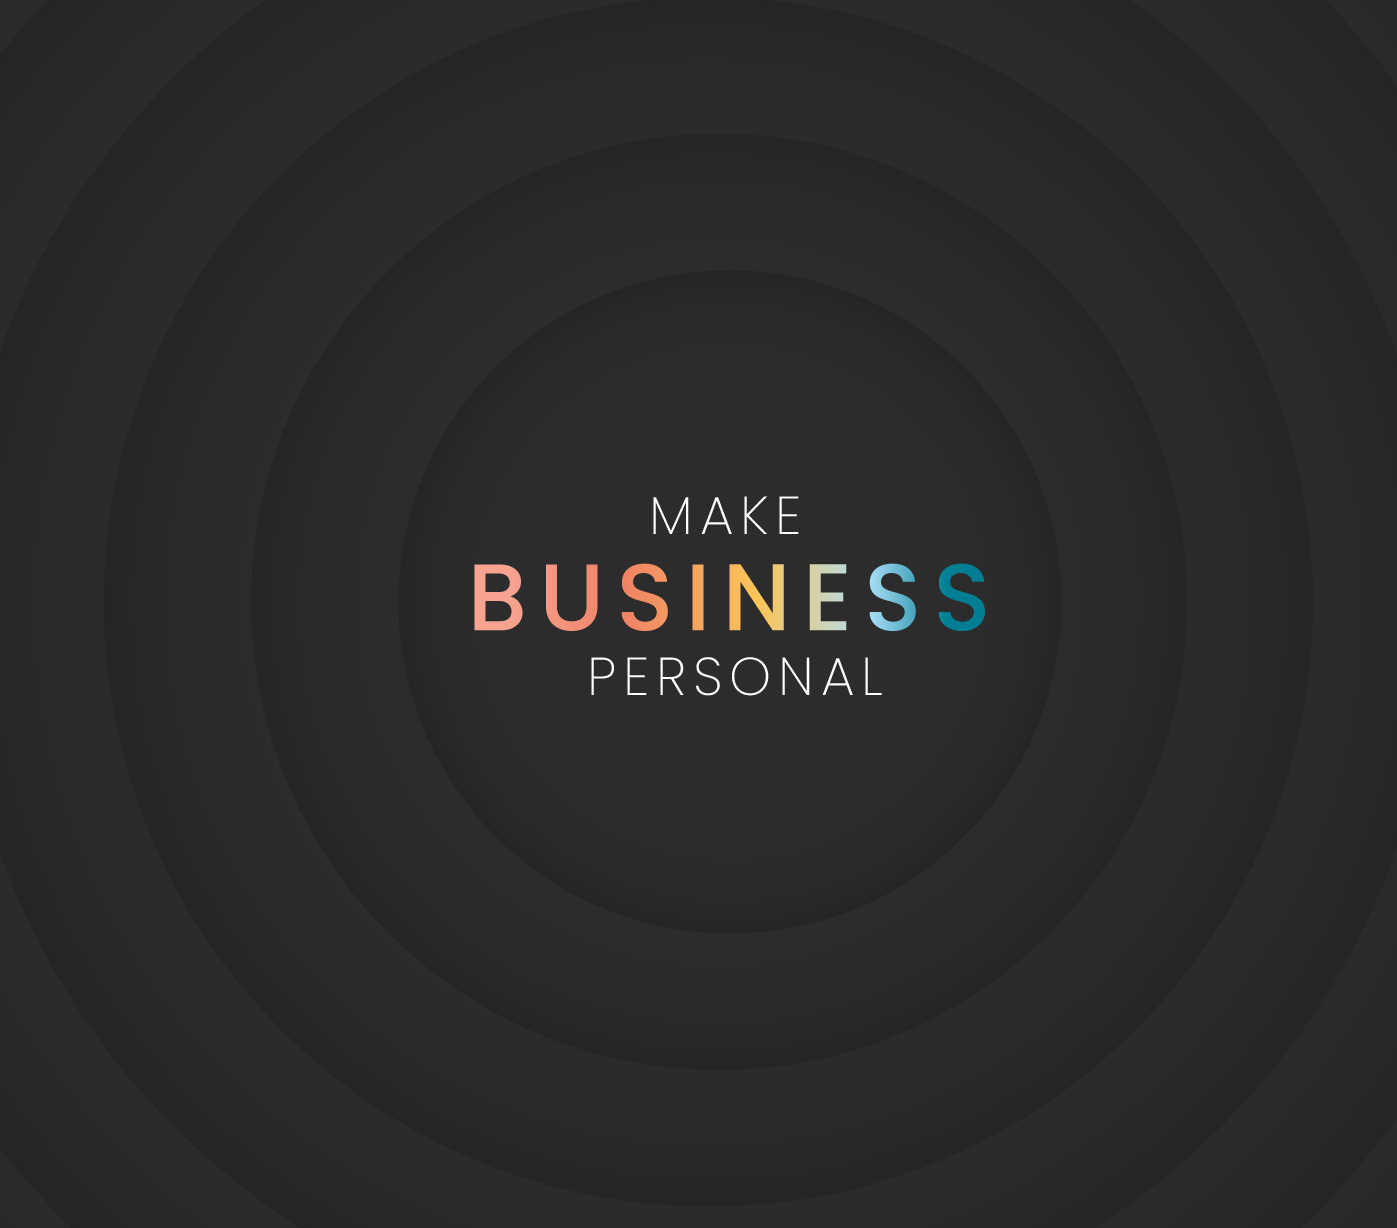 Make Business Personal for Mobile